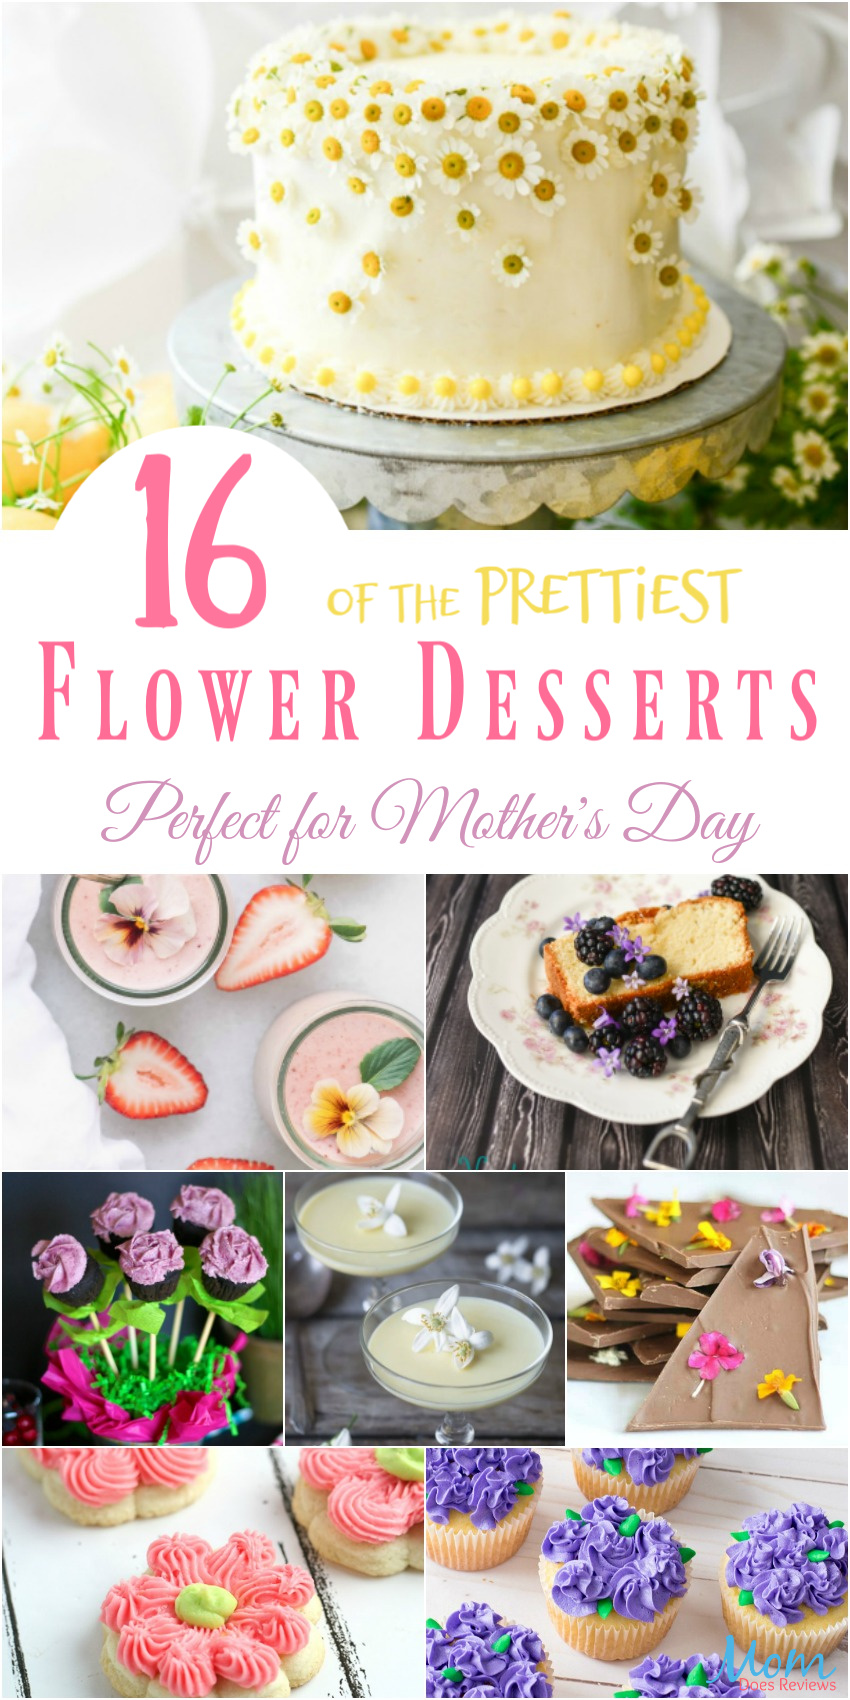 16 of the Prettiest Flower Desserts Perfect for Mother's Day #desserts #recipes #sweets #flowers #mothersday